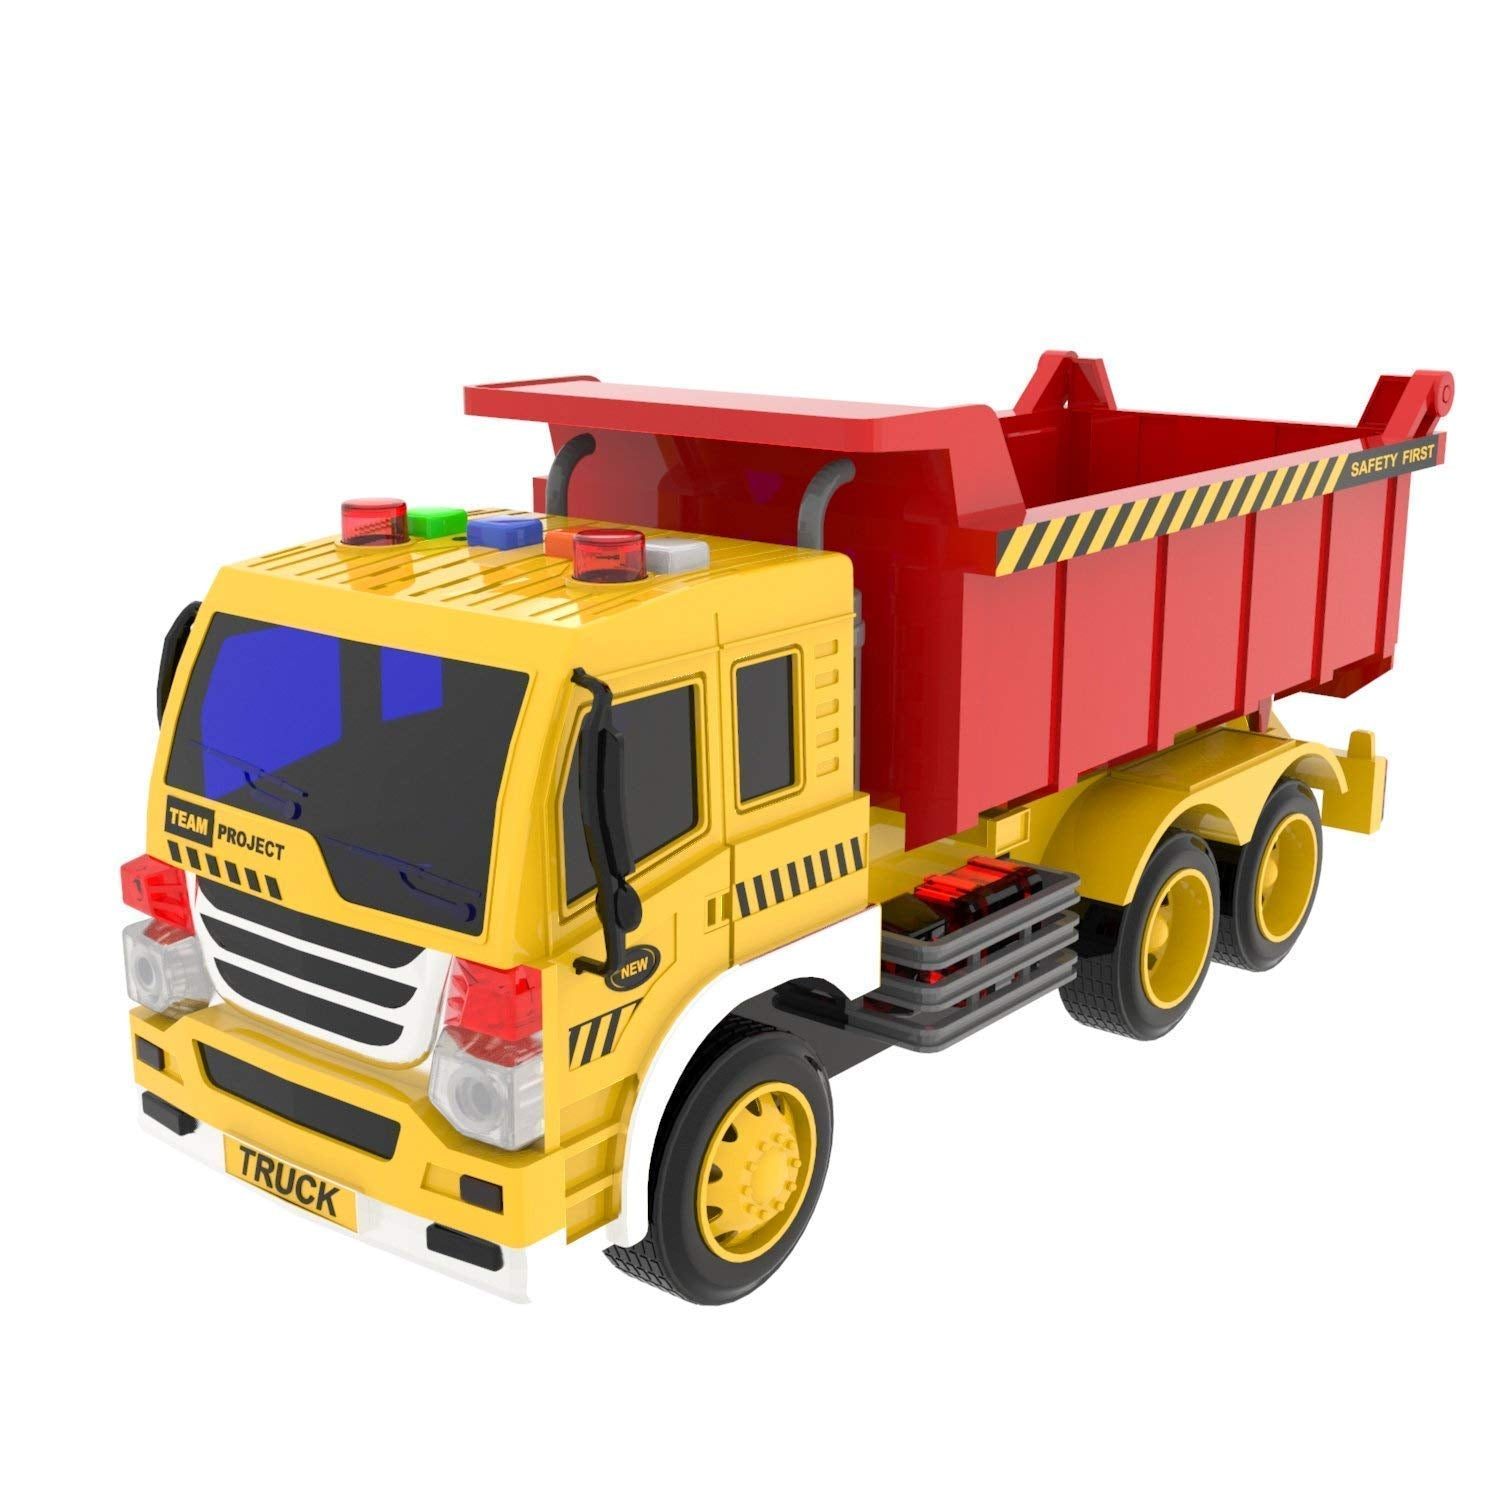 Dump Truck Toy Friction Powered Construction Toy Trucks with Sounds and Lights for Kids Gifts( Batteries Included )